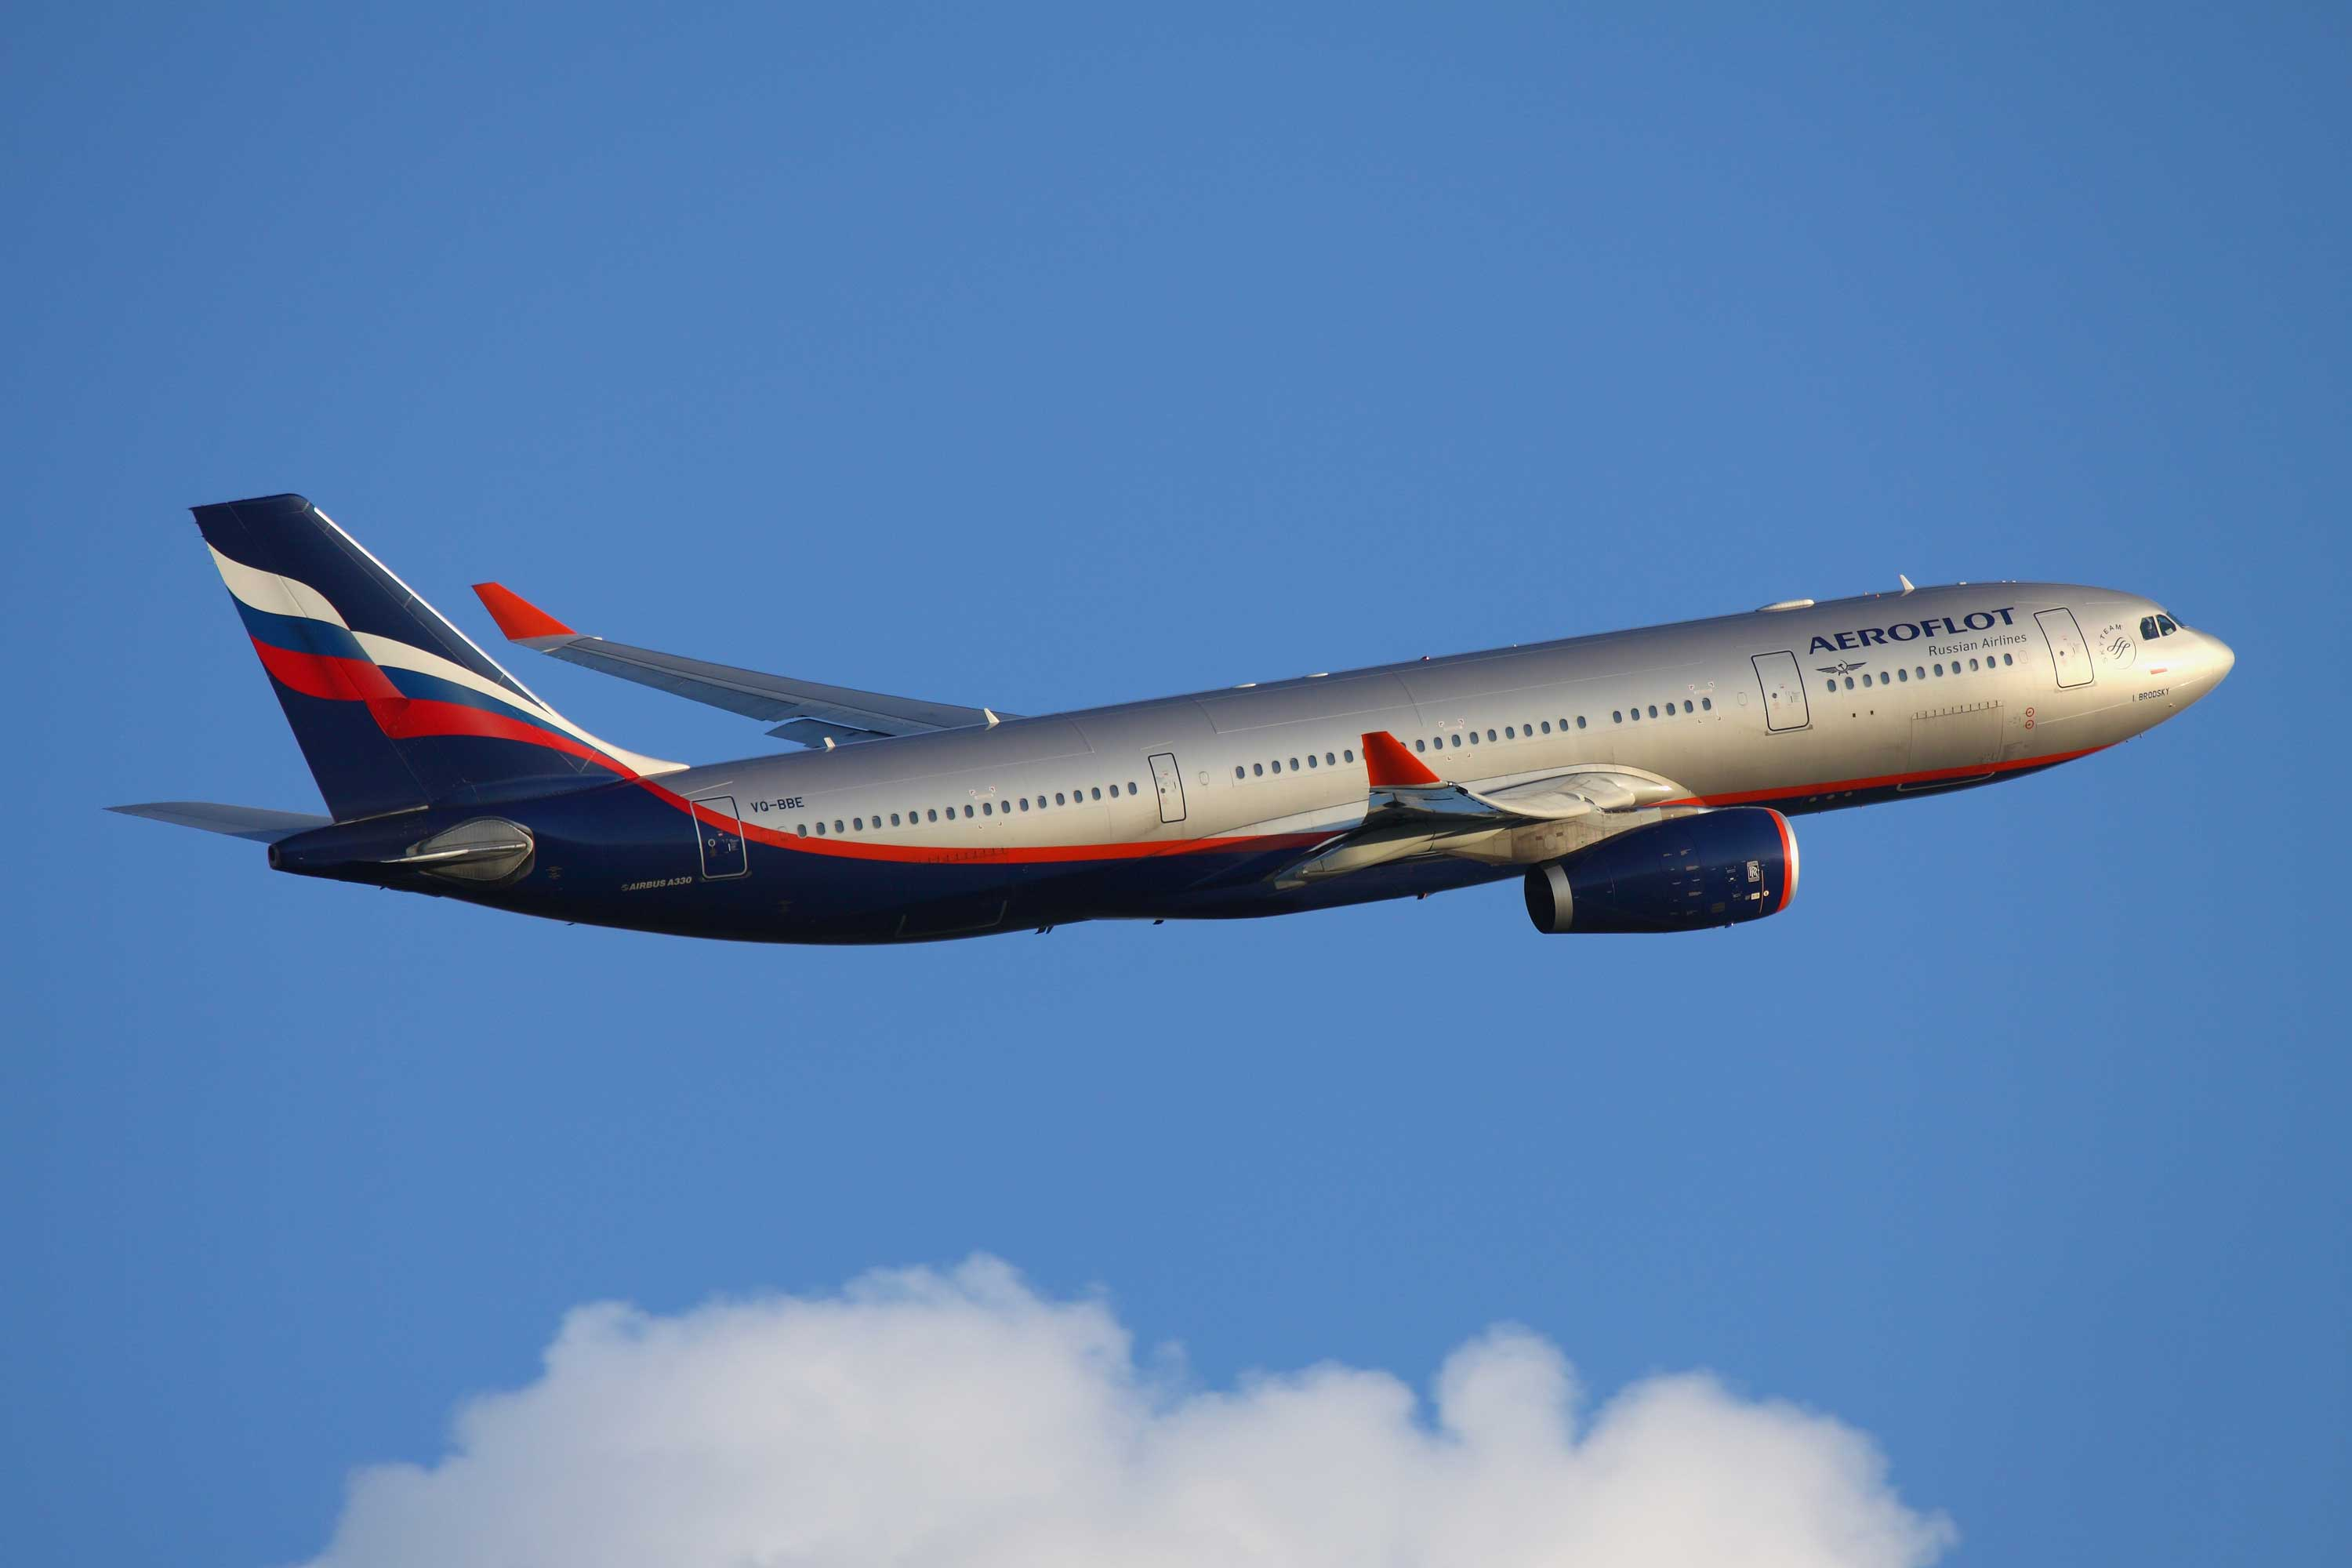 As MIA-Russia flights decline, Aeroflot to add flight